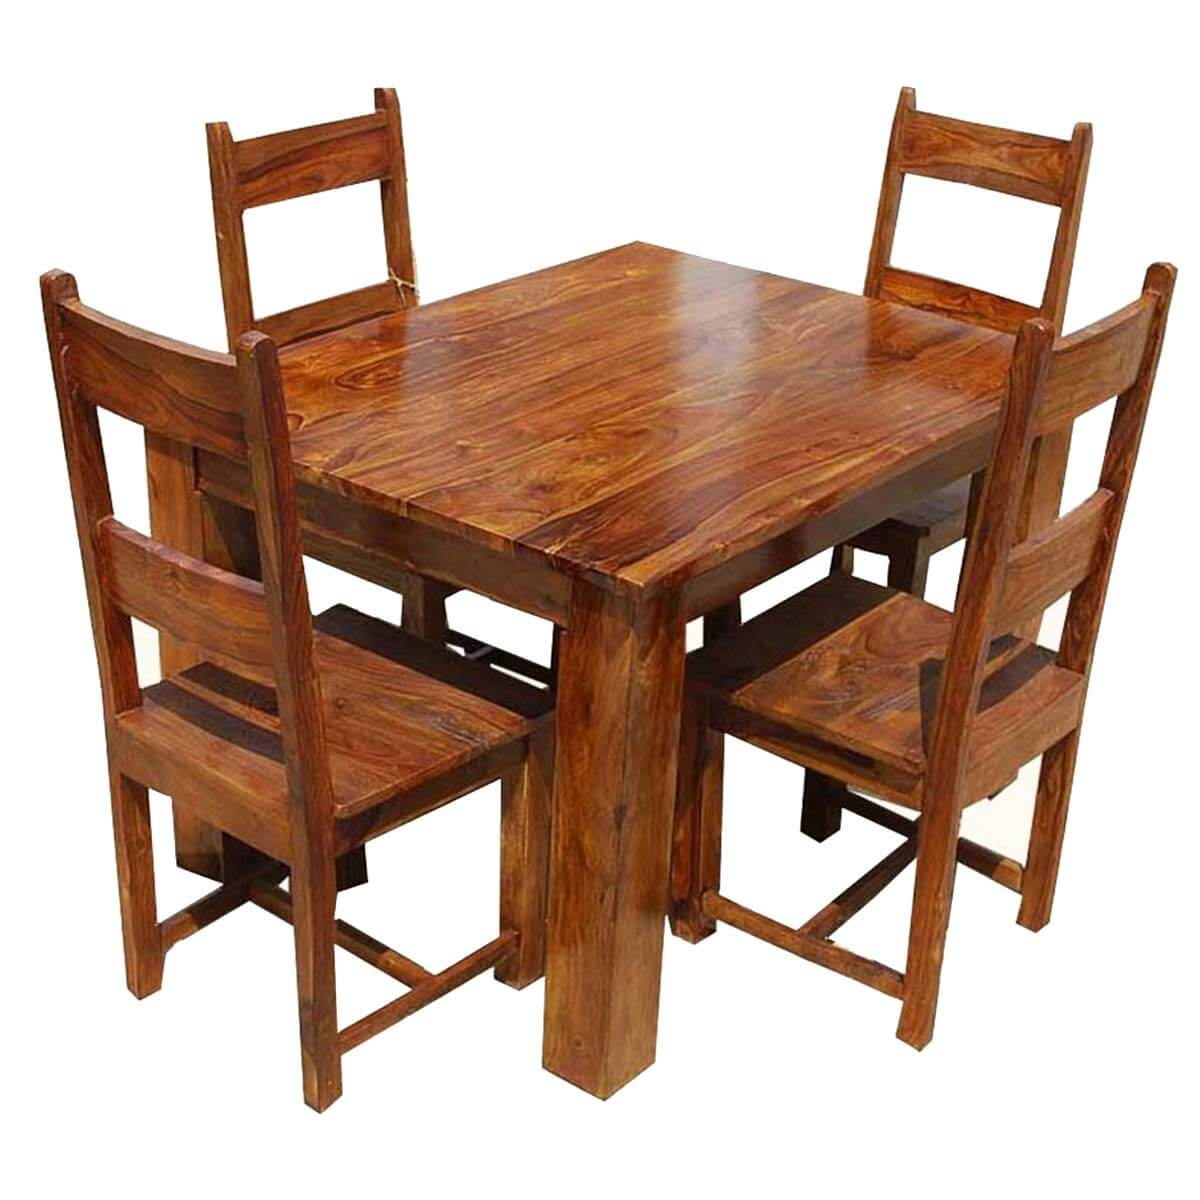 Dining Room Sets Wood: Rustic Mission Santa Cruz Solid Wood Dining Room Set For 4